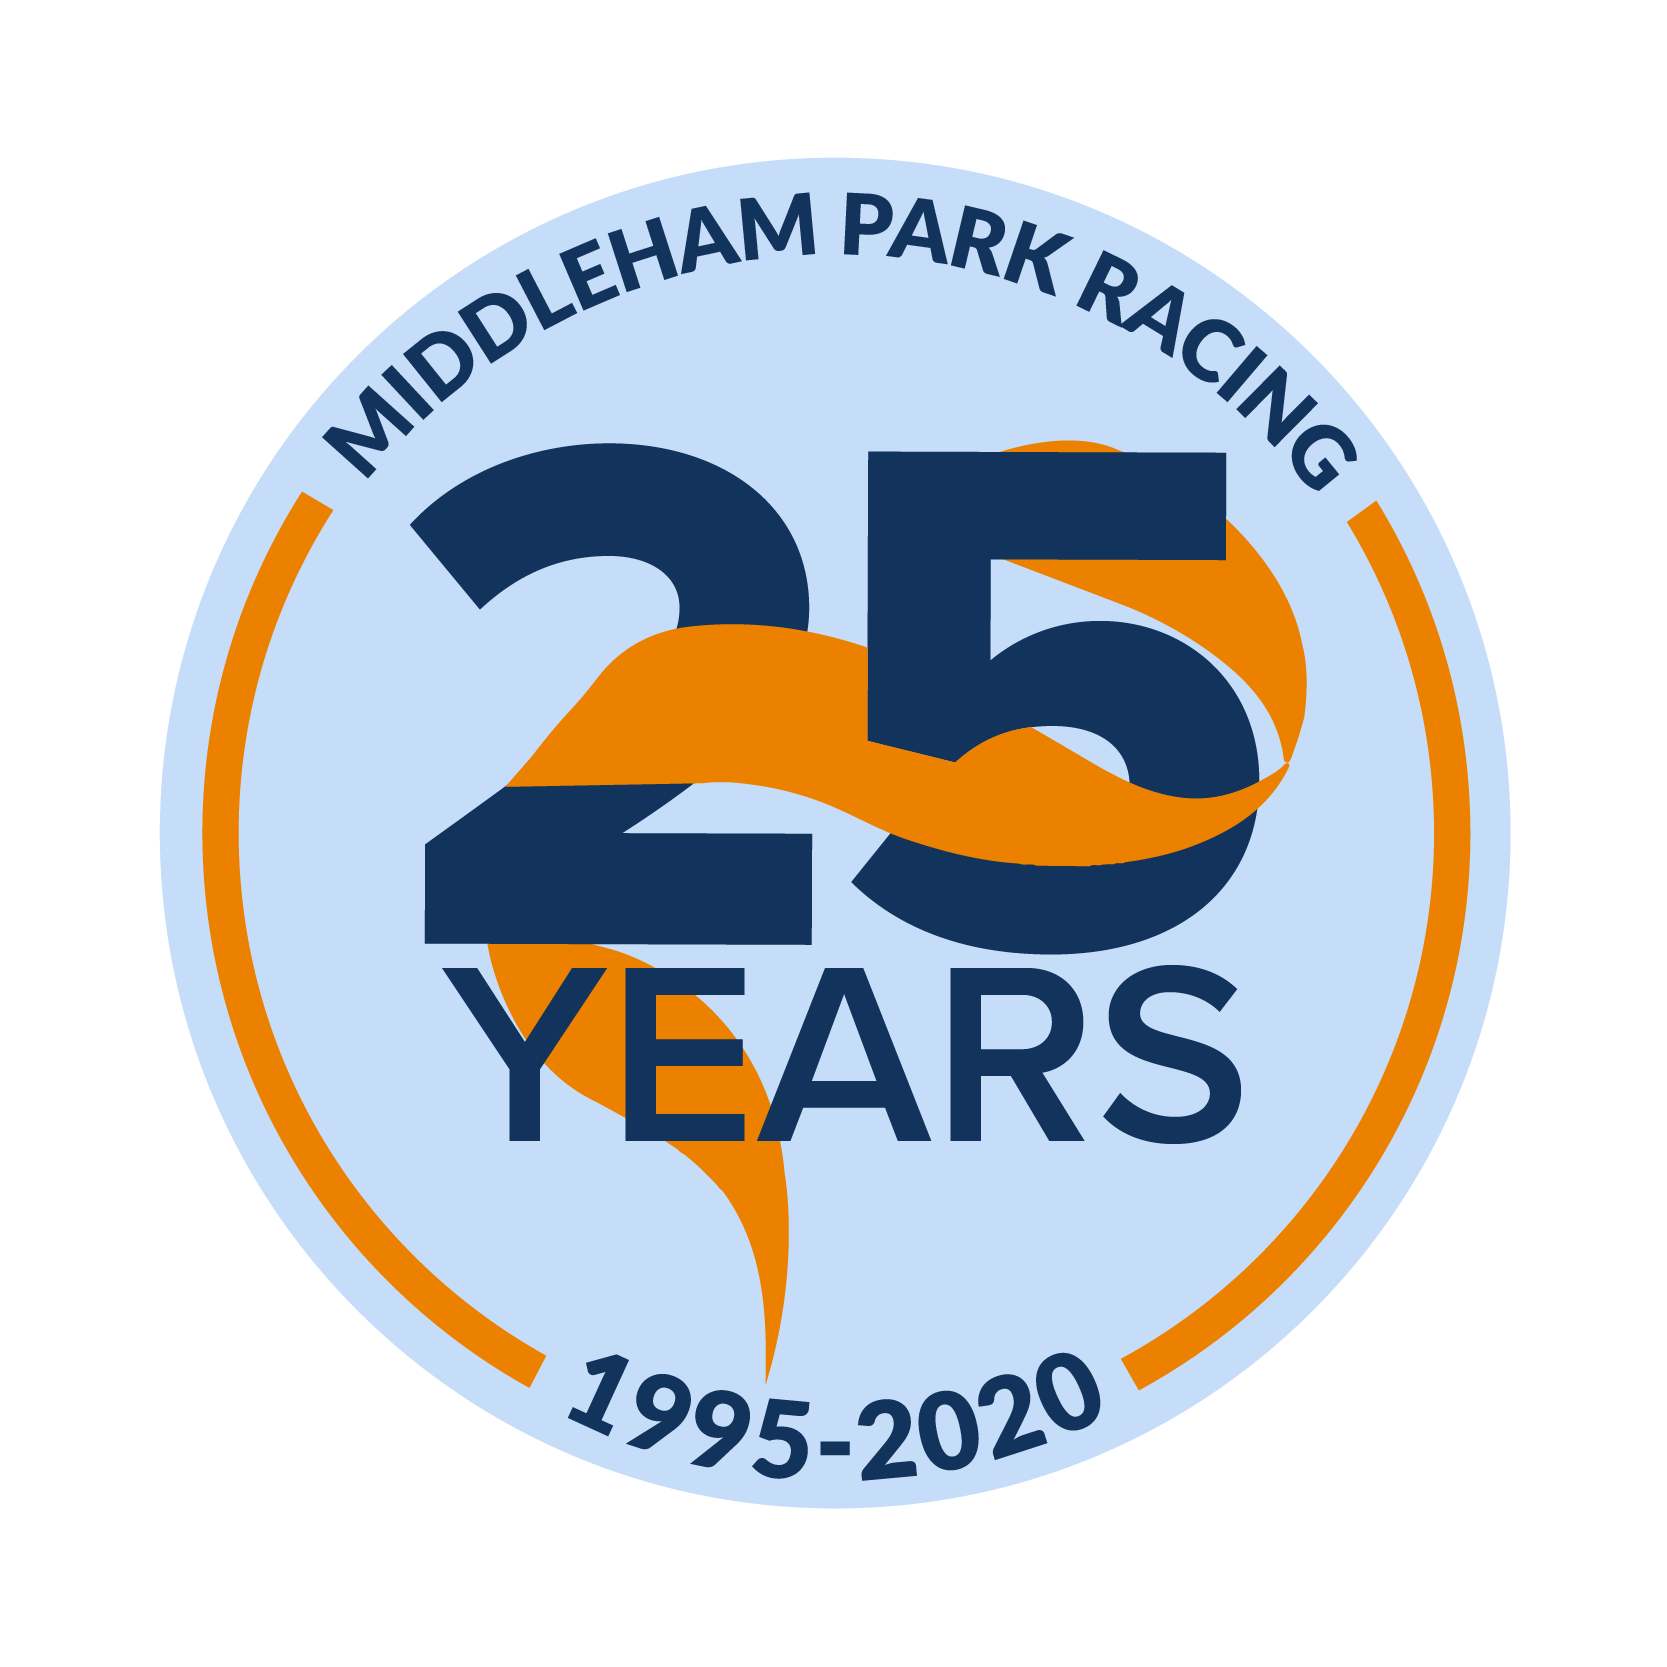 Middleham Park Racing 25 years